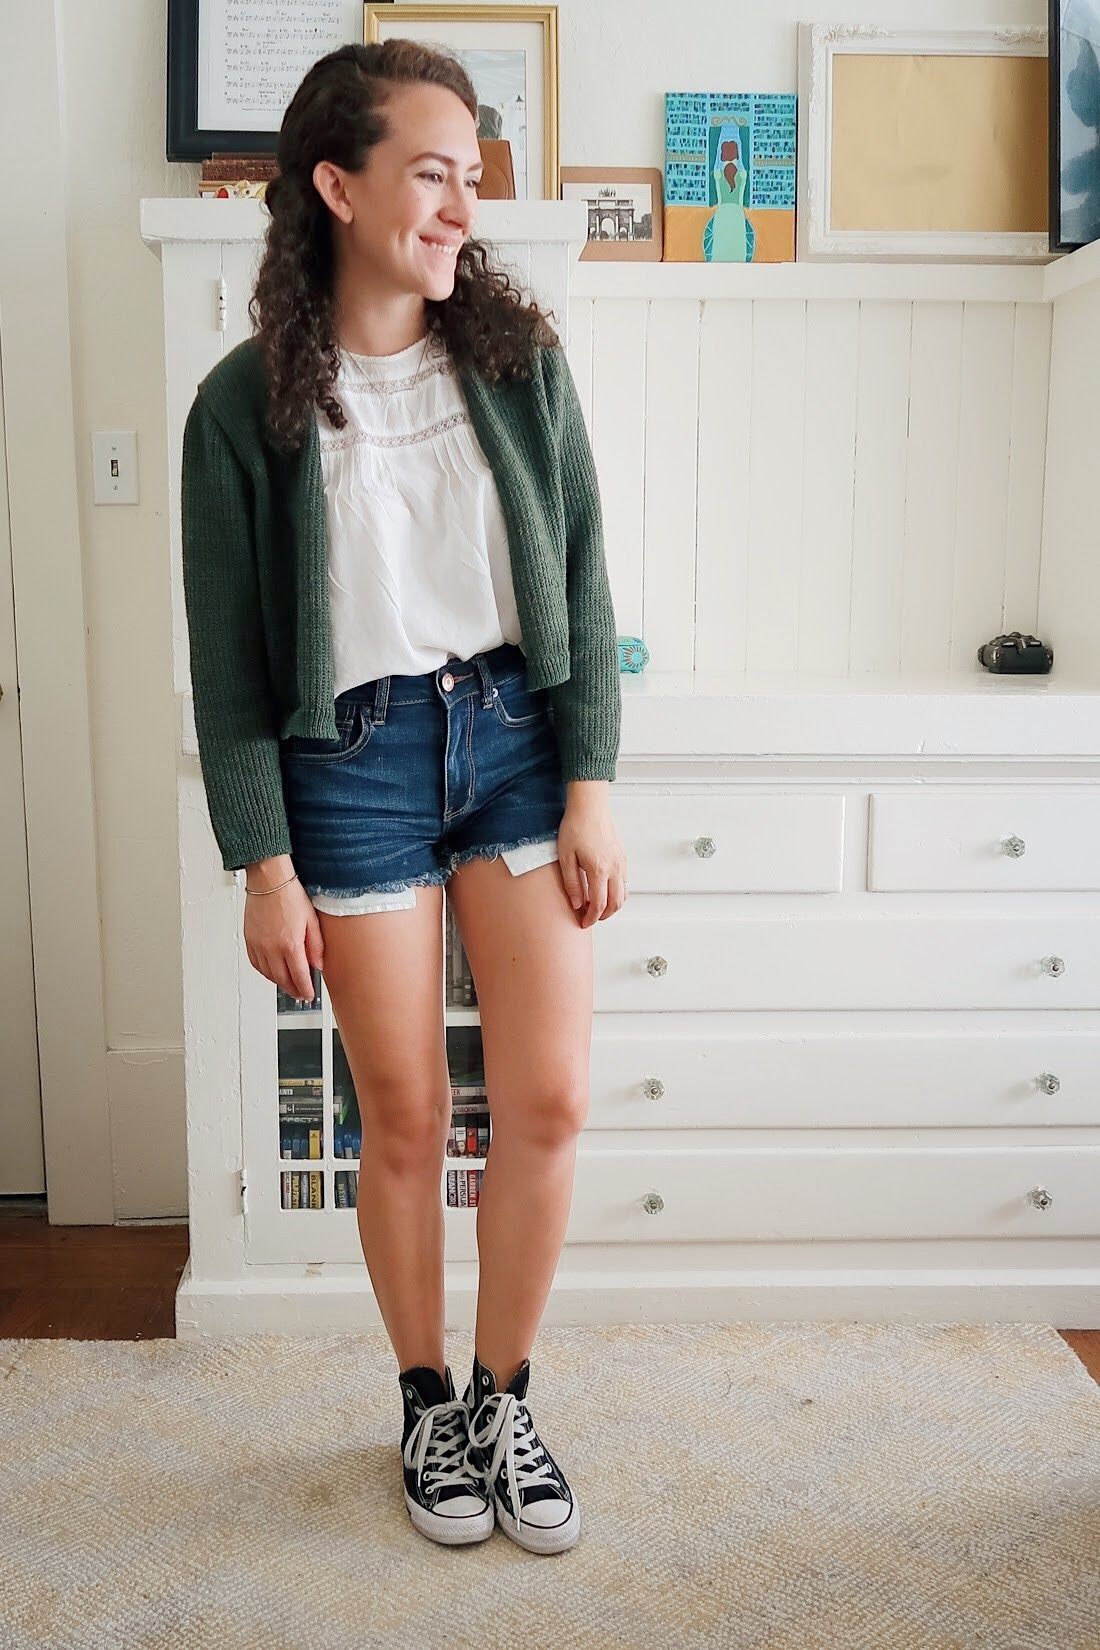 my mid-season mini haul included these dark wash high rise denim shorts from american eagle. so comfy and so easy to wear. styled with a white flowy blouse, black high top converse, and my thrifted olive green cropped cardigan. kinda perfect for back to school.